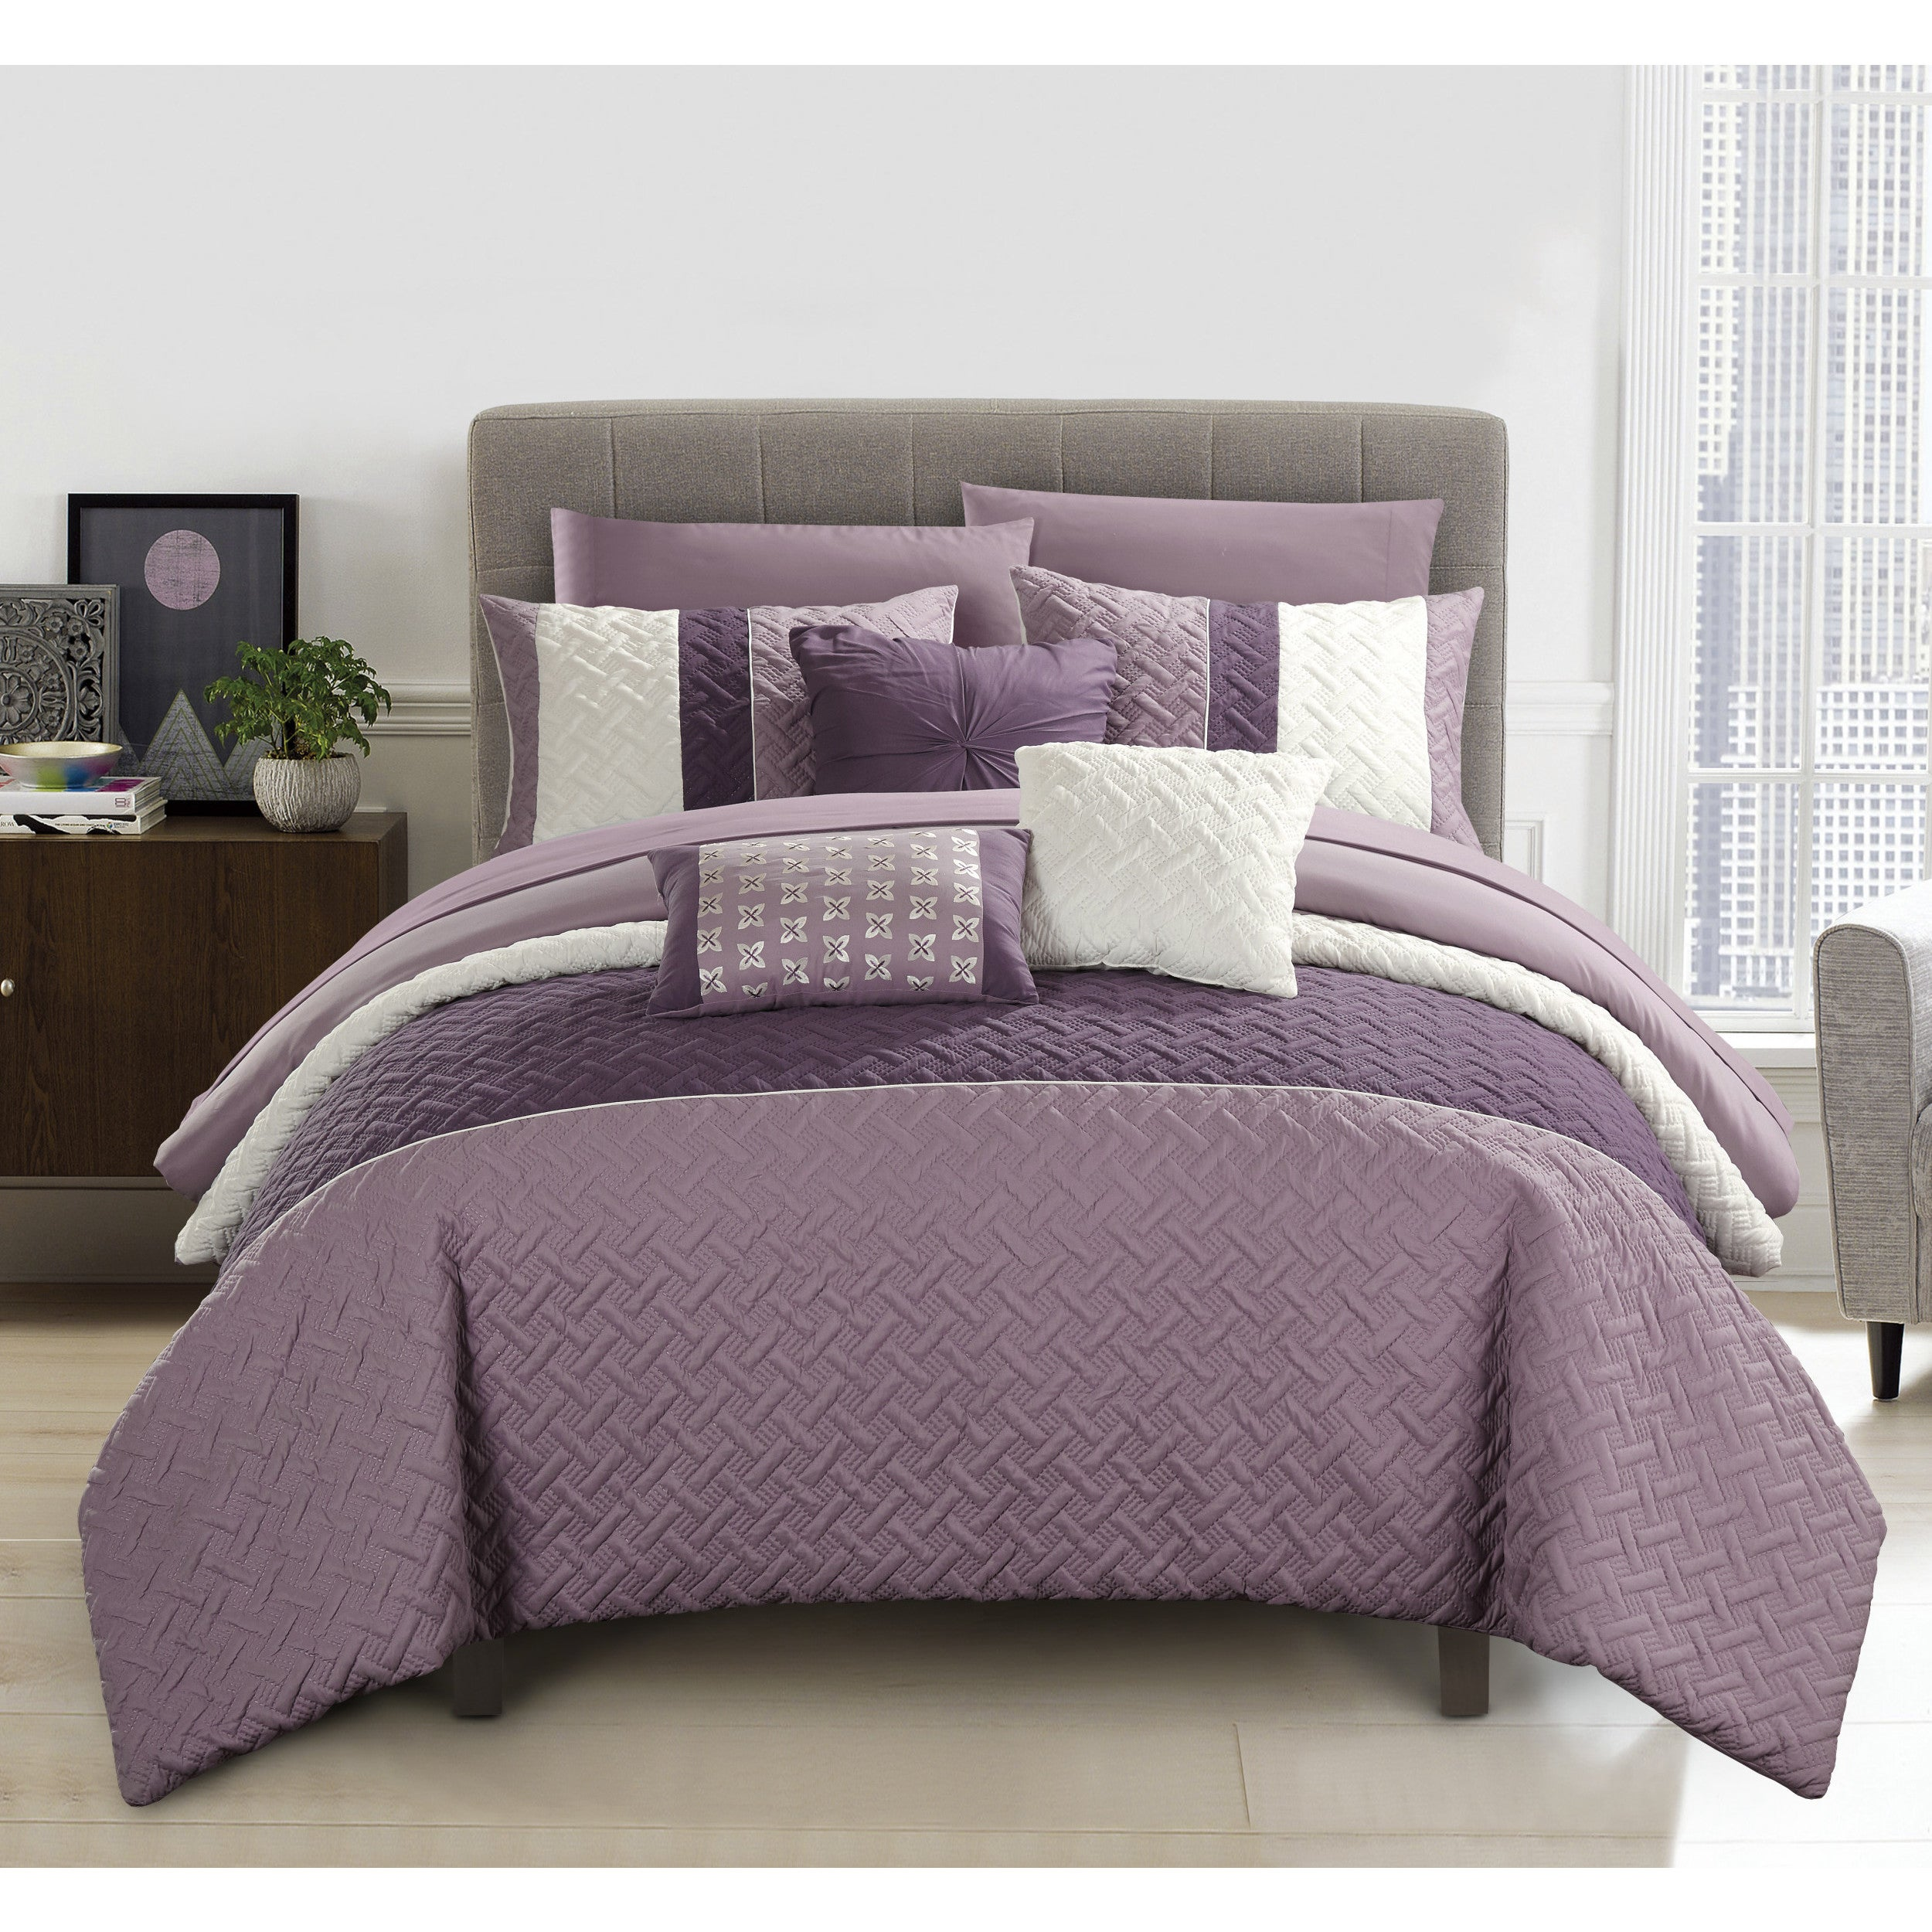 reversible cheap luxury purple duvets coverlets duvet bedroom royal botanical patterns grey king cover super meadow sets covers beds comforter full double bedding of eggplant blue pillowcase and plum set lavender site westerncycles size quilt quilts amazing bedspreads